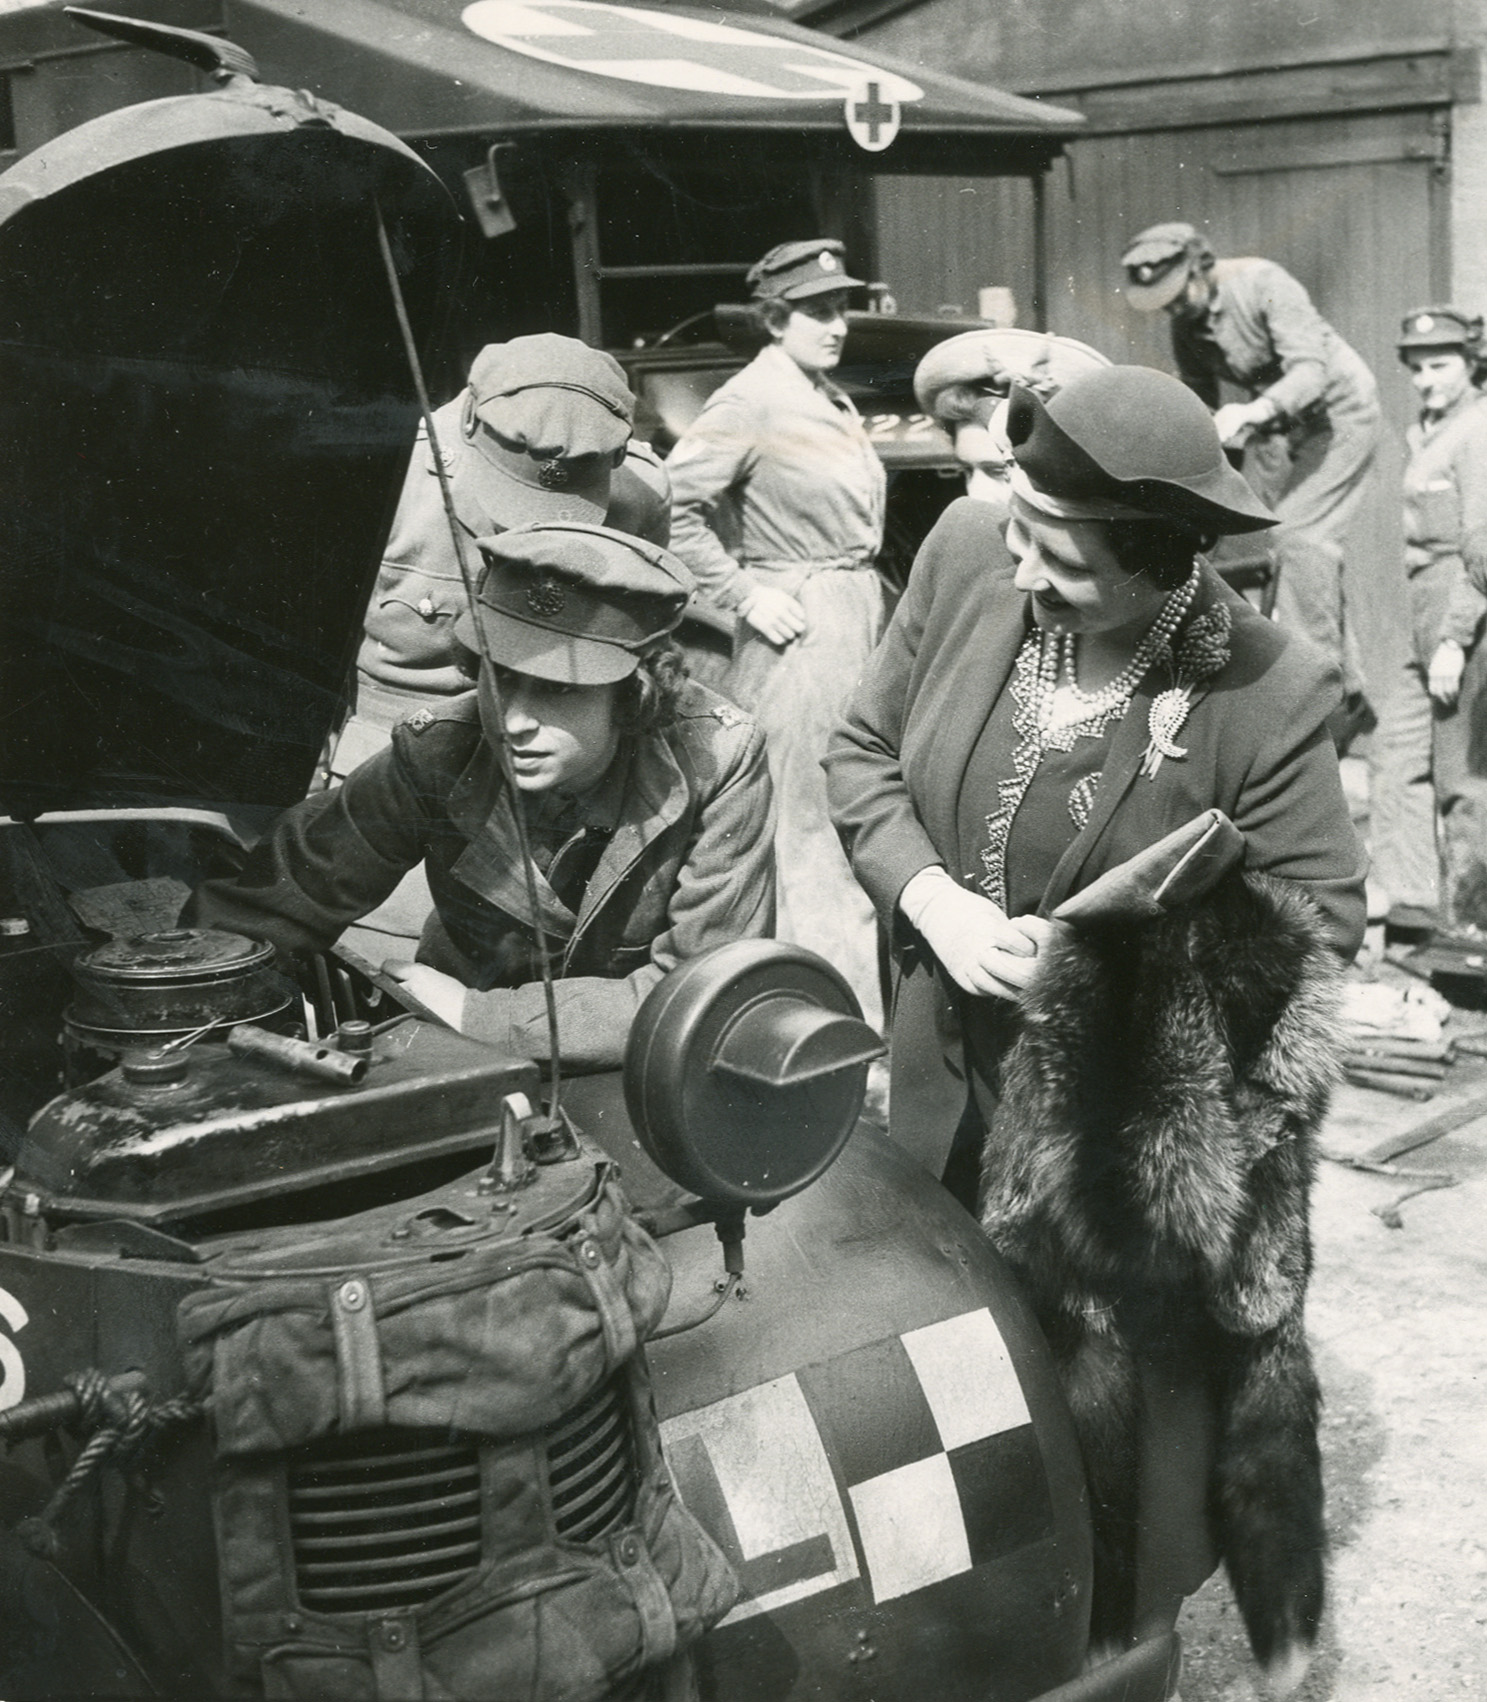 Princess Elizabeth explains to the Queen what she has done to the car engine. April, 1945.